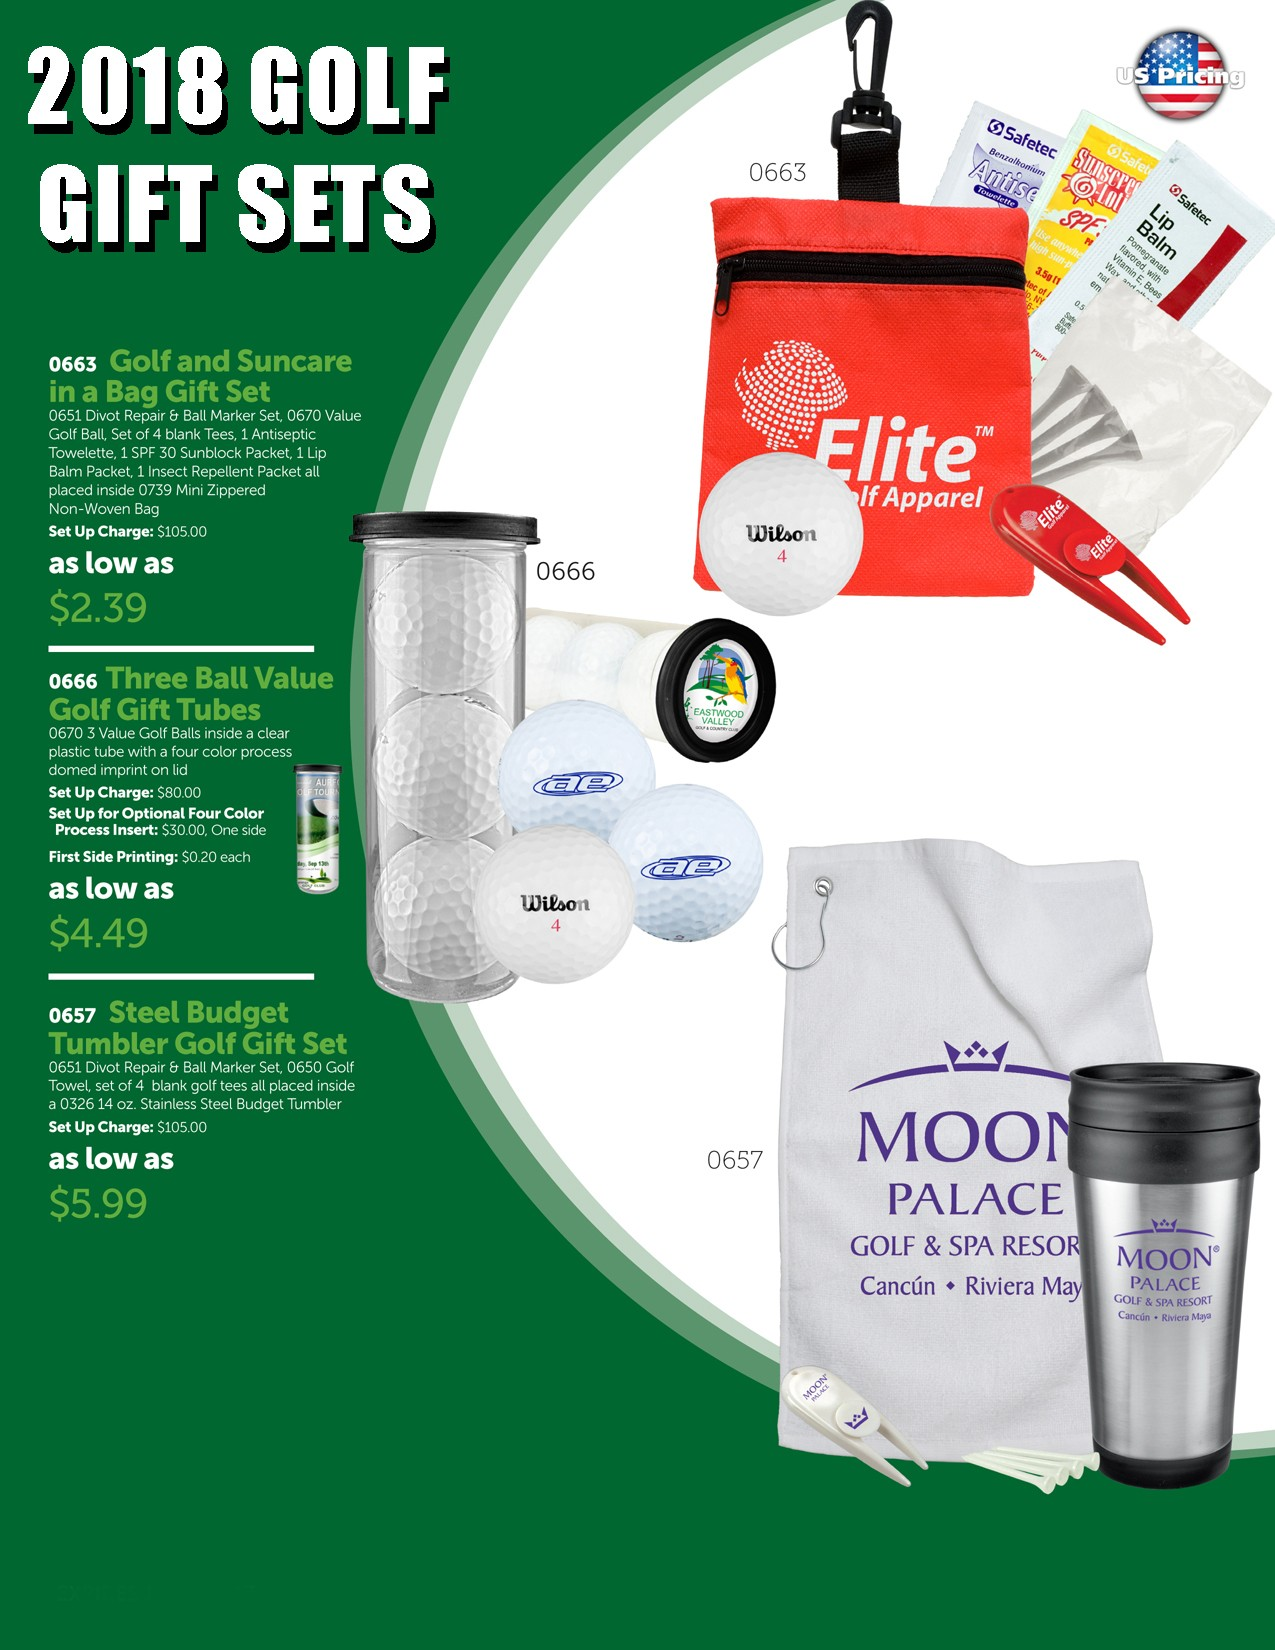 2018 Golf Gift Set Package 3